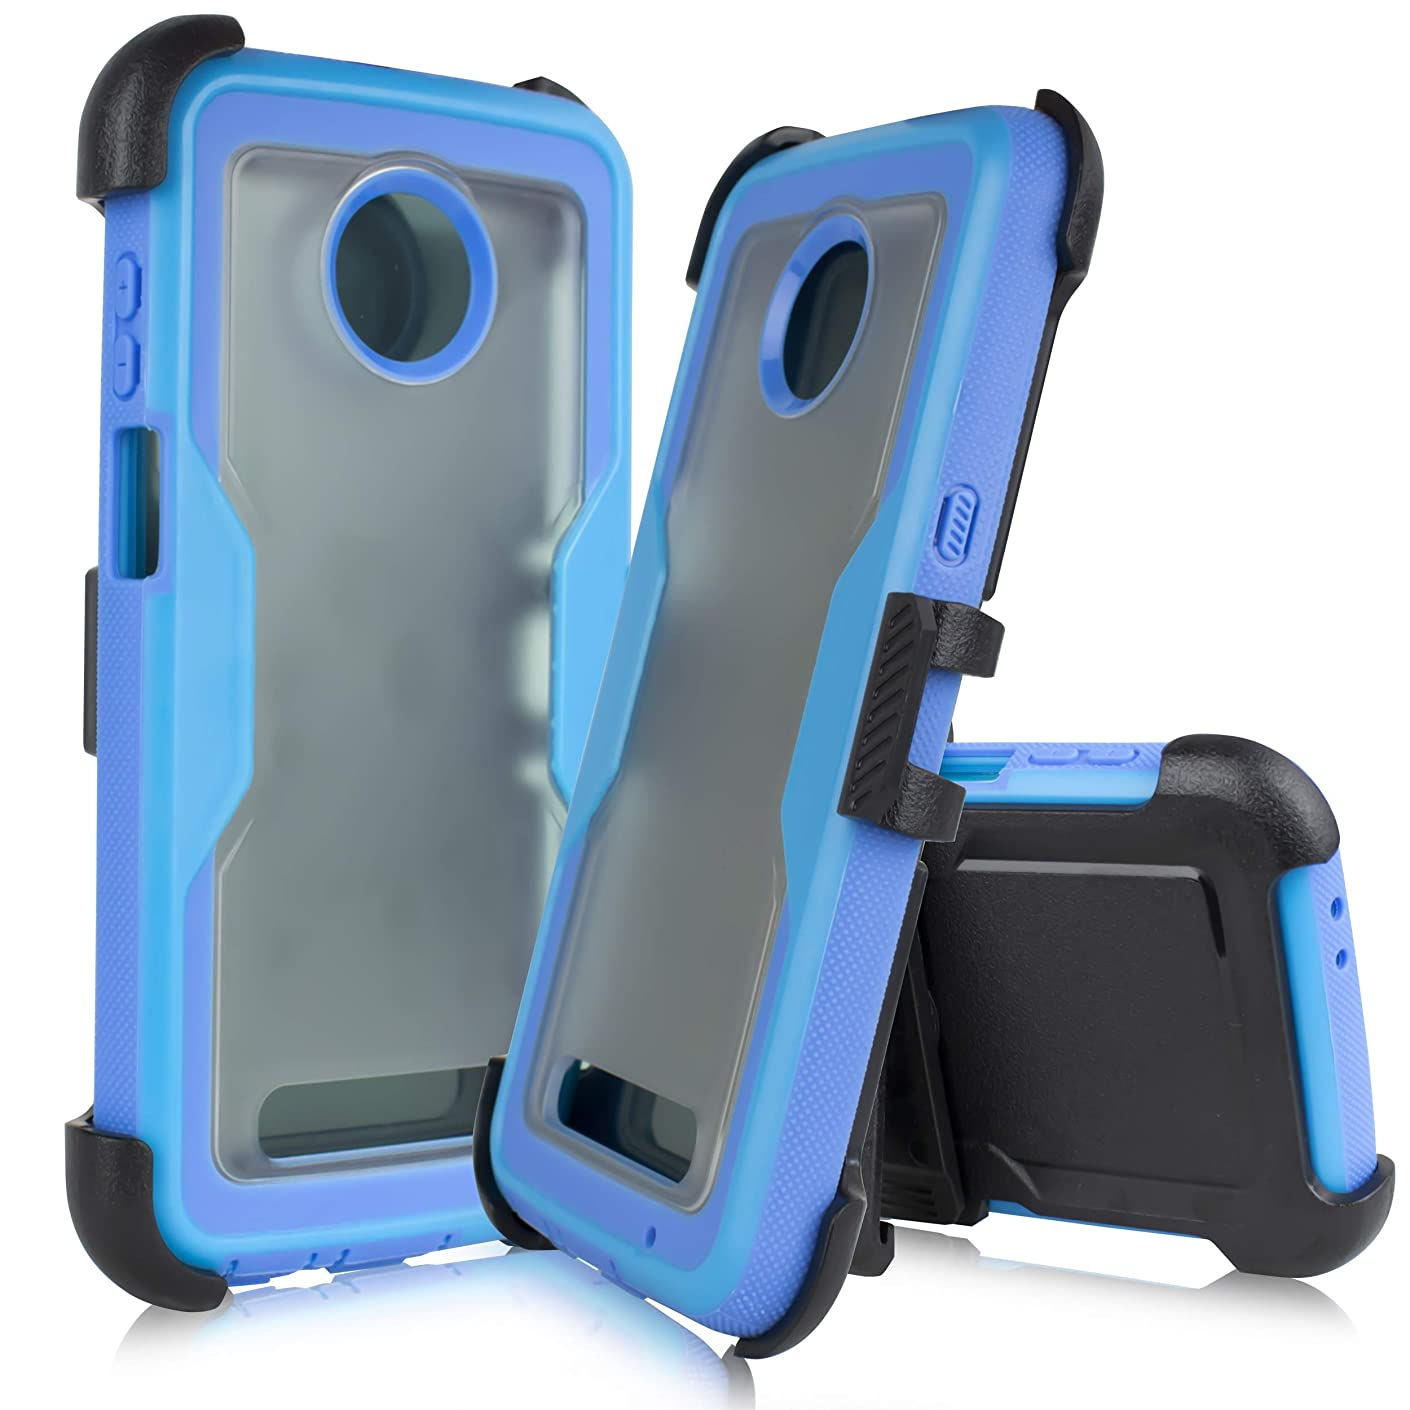 Compatible for Motorola Moto Z3 Play, Z Play 3rd Generation 2018 Release (XT1929) Full Body Rugged Holster Explorer Tough Armor Case with 360 Swivel Clip & Built in Screen Protector (Blue)